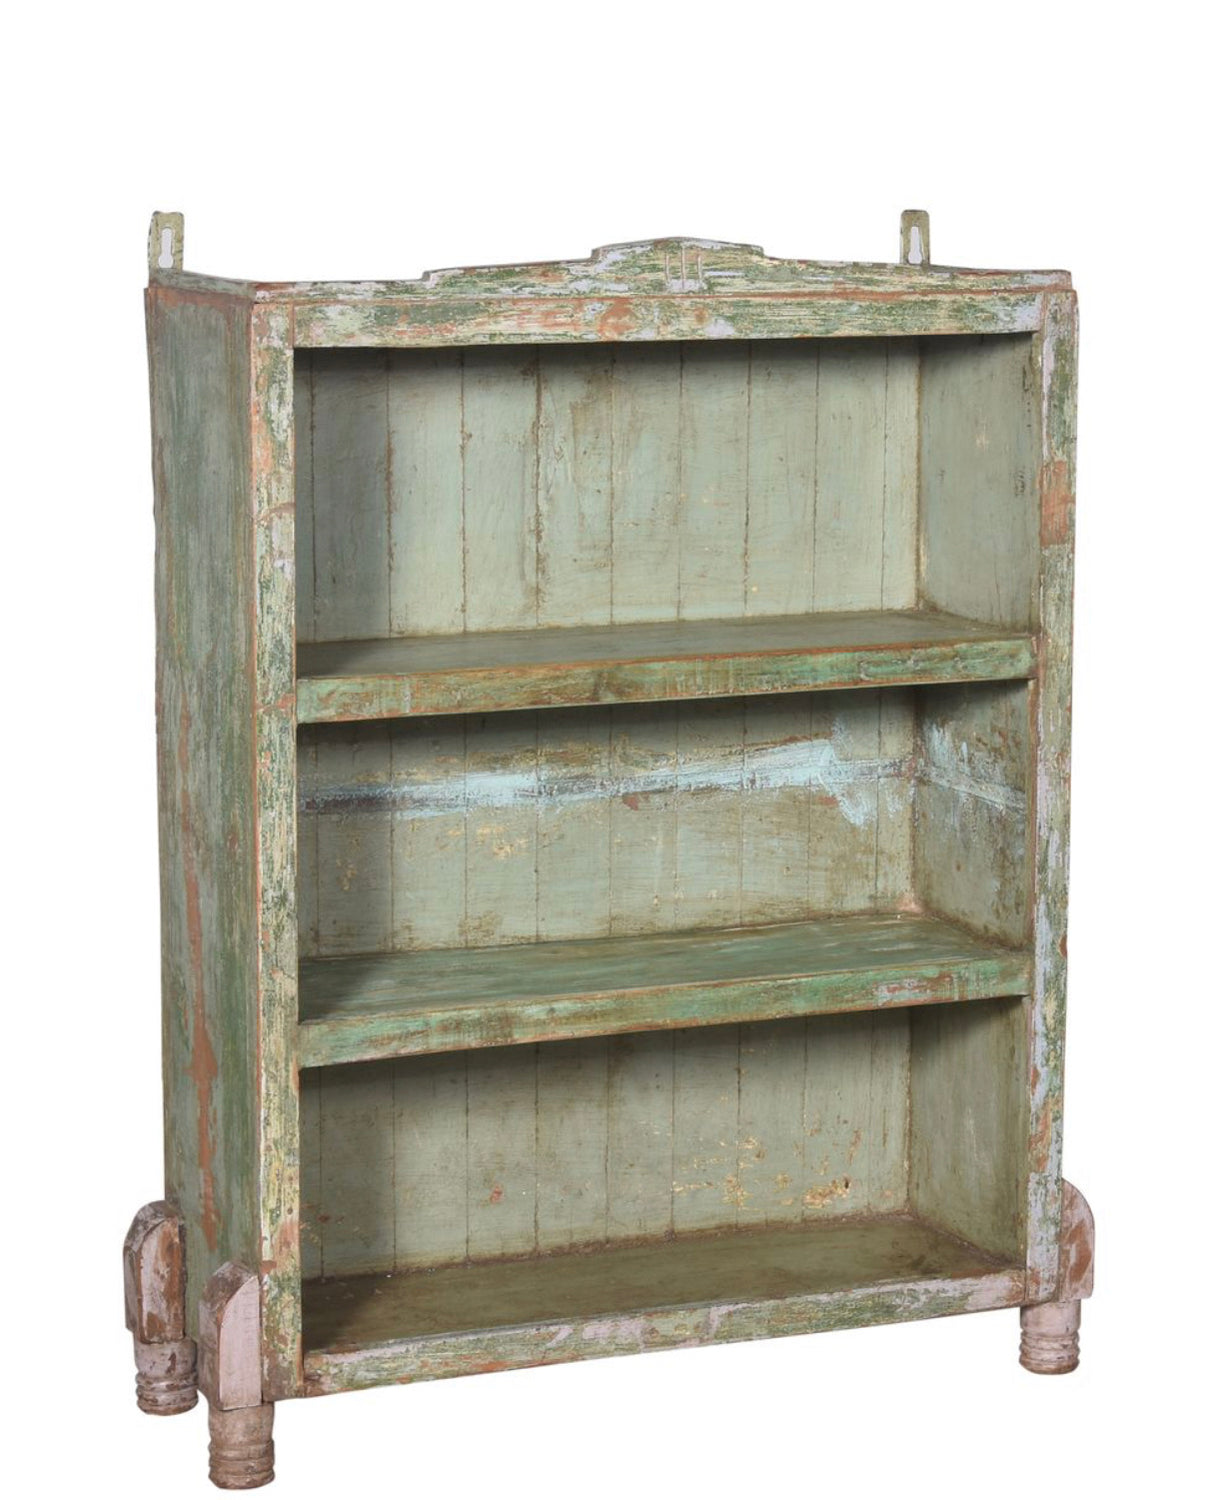 VINTAGE INDIAN DISPLAY RACK